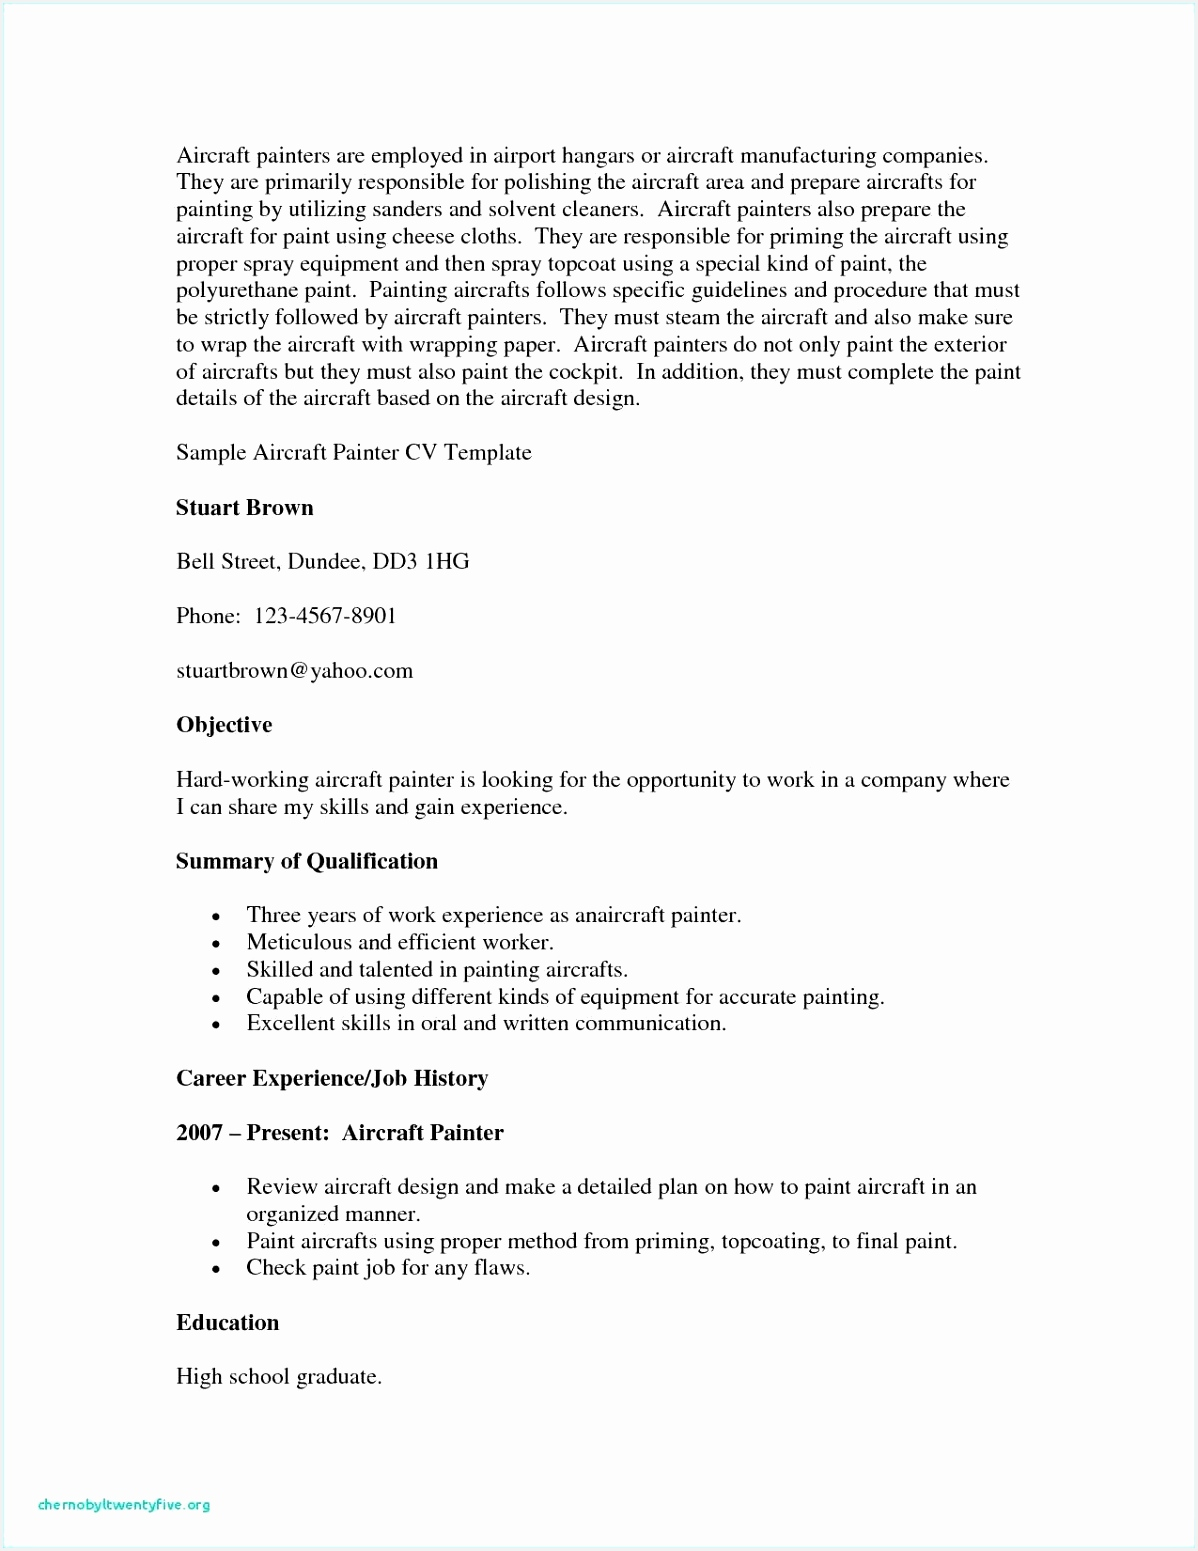 High School Job Resume Template Free Job Resume Outline In Resume Examples 0d Good Looking Samples 15511198lgchu